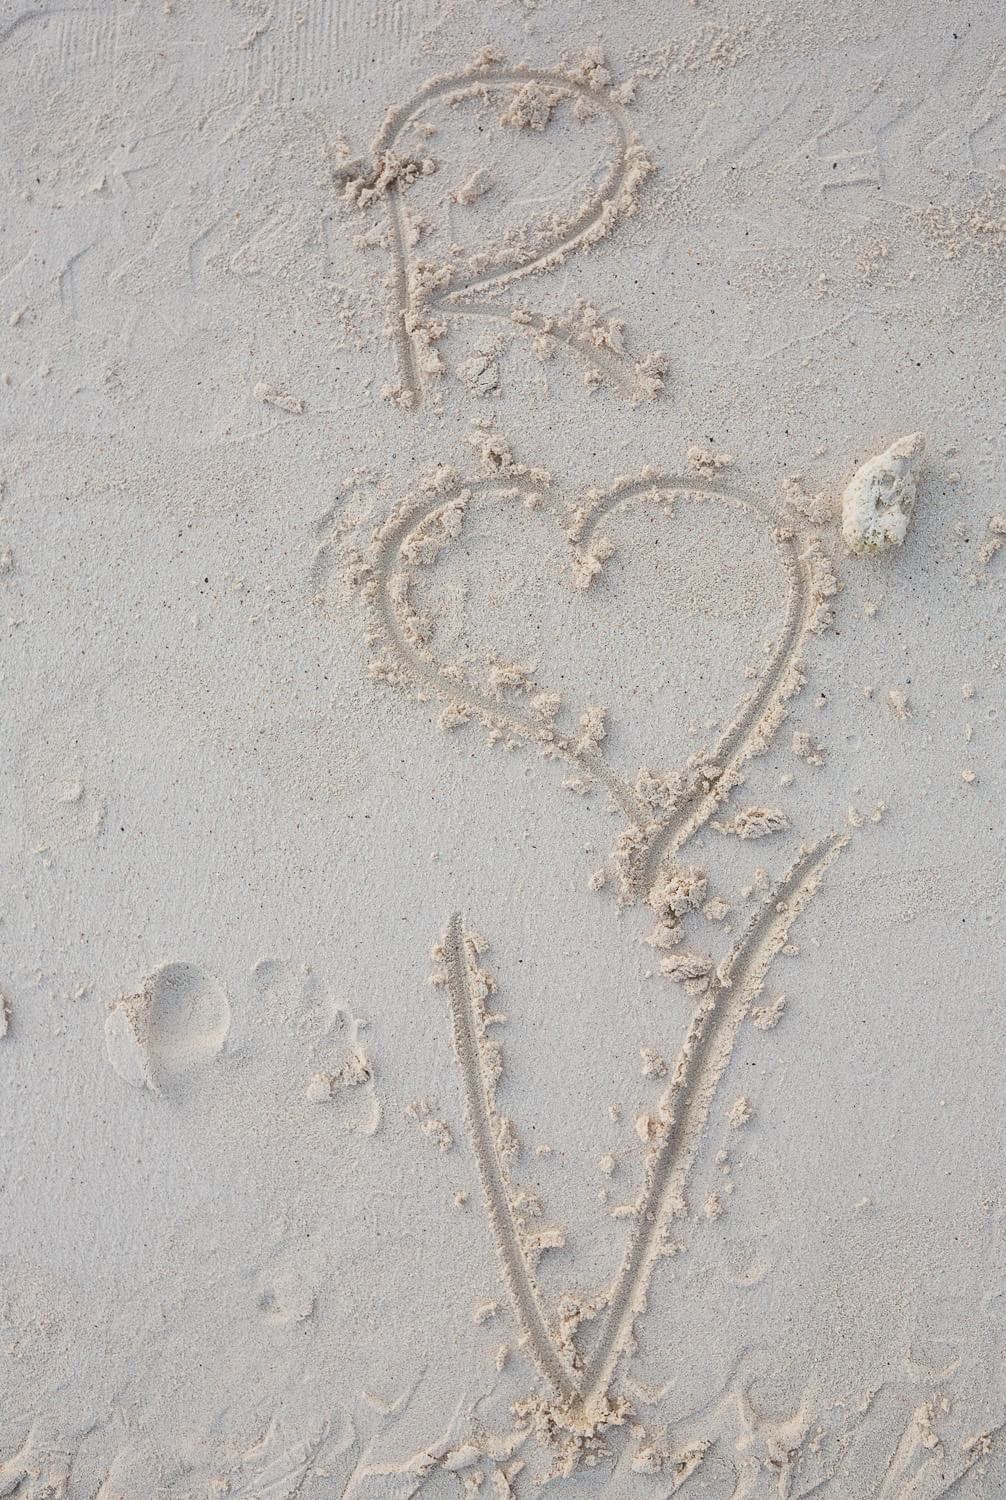 Initials in sand on beach in Mexico, wedding.